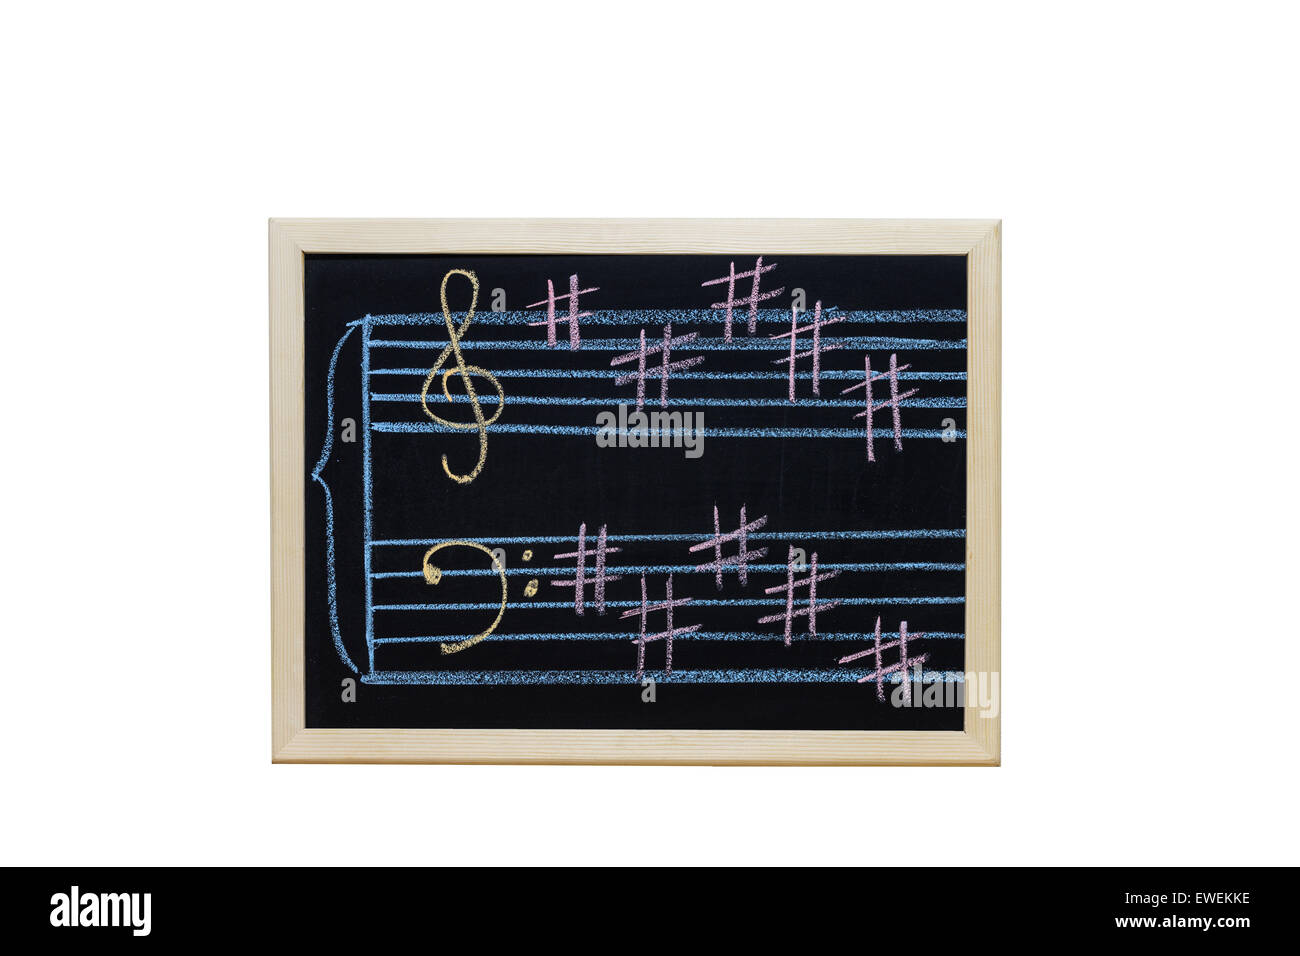 music staff in key B written on blackboard - Stock Image